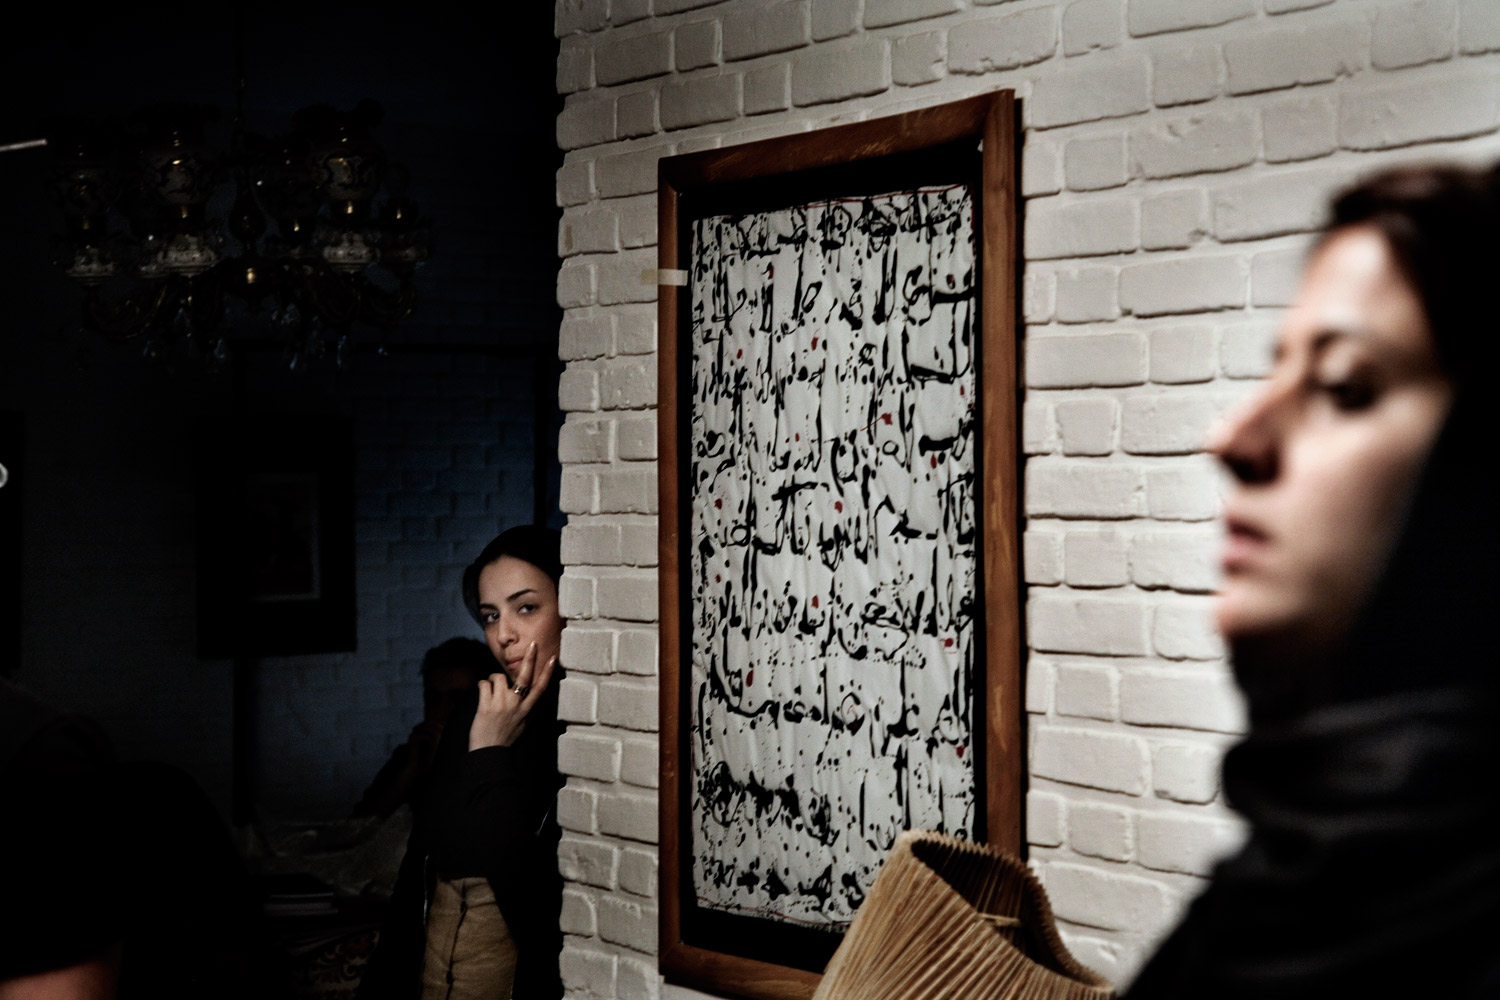 Actresses stand on set during the filming of A Woman Is Always Involved by Kamal Tabrizi in Tehran.